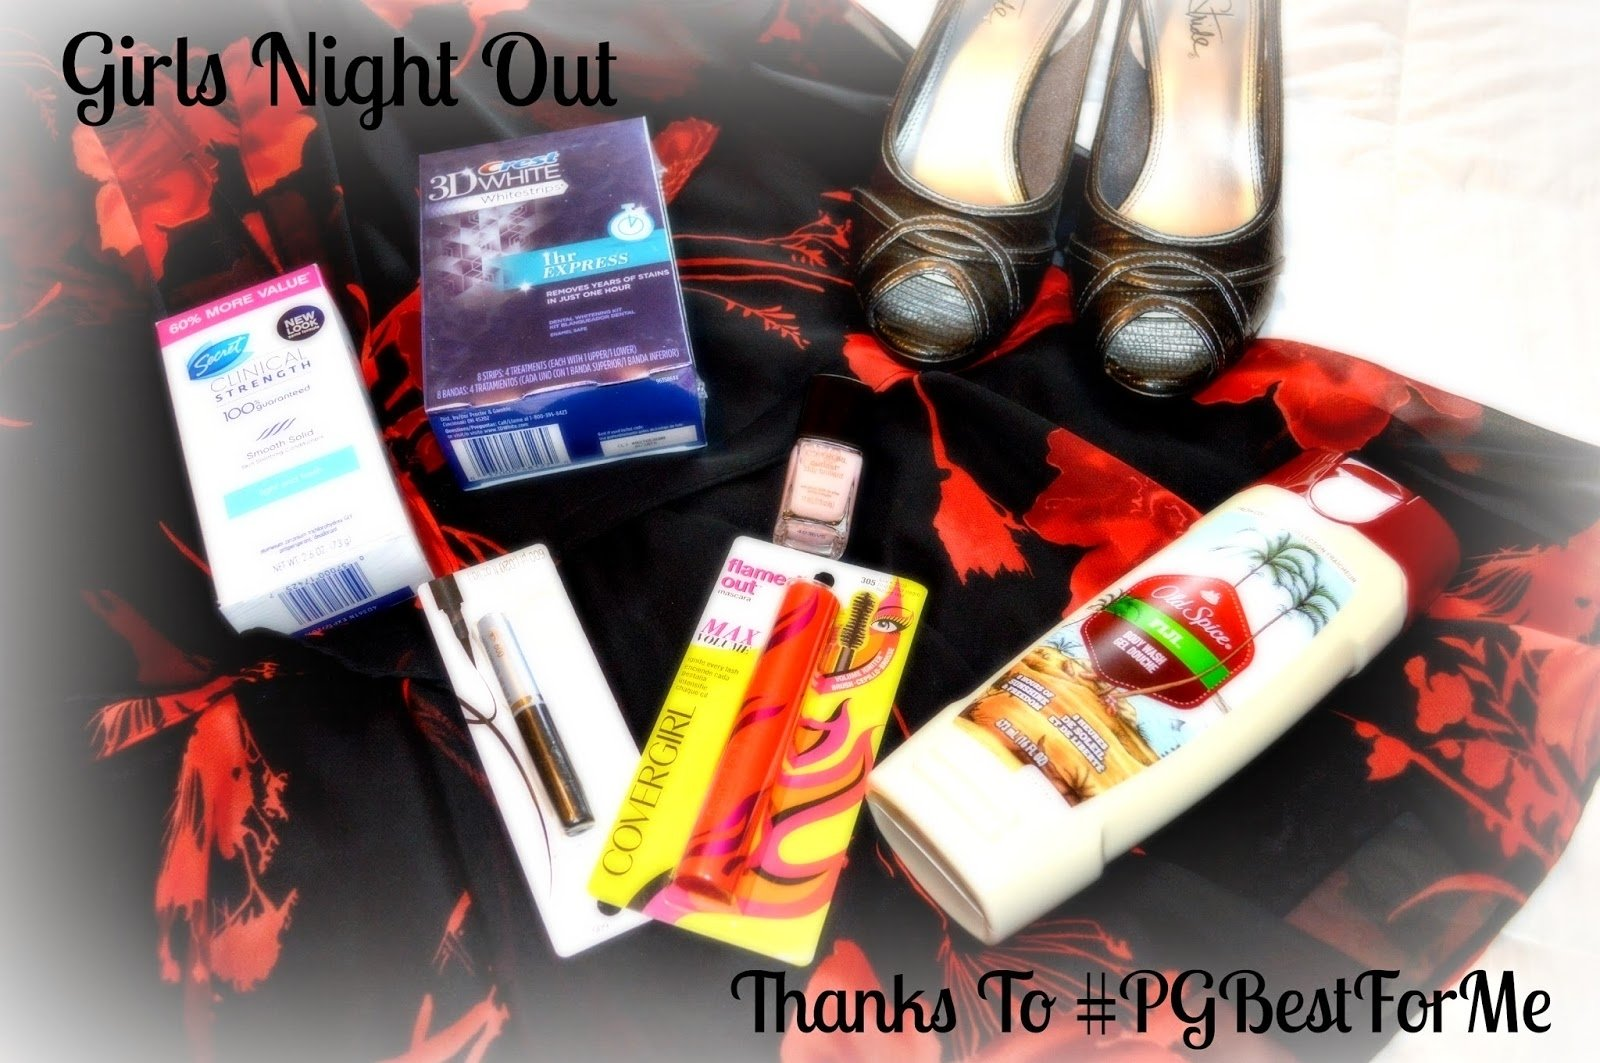 10 Lovely Girls Night Out Gift Ideas give yourself a girls night out compliments of pgbestforme 2020